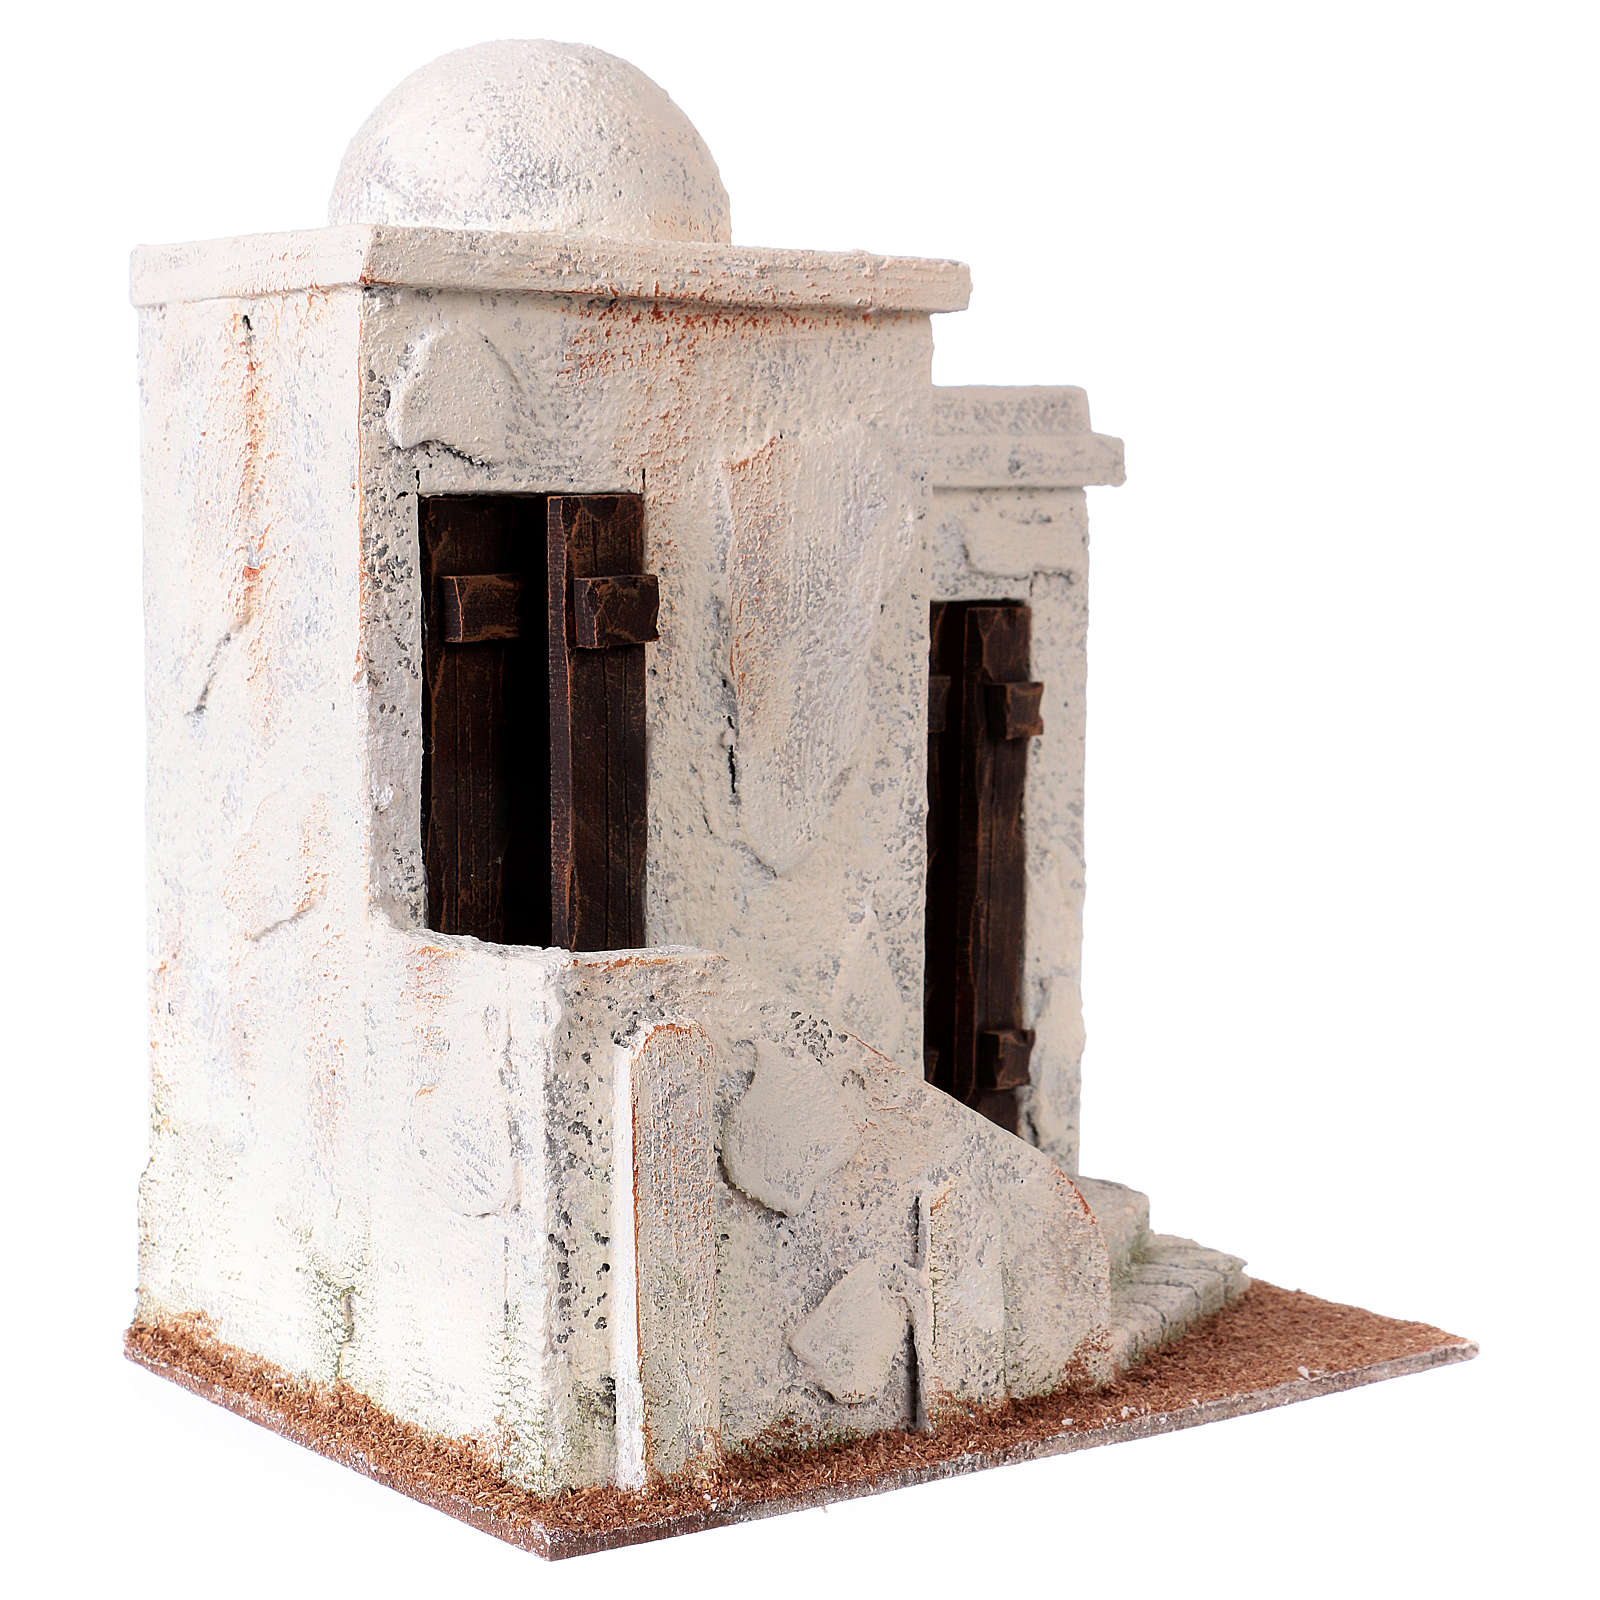 Nativity scene setting, Palestinian house with 2 doors and stairs 25x20x15 cm for 9-10 cm Nativity scene 4